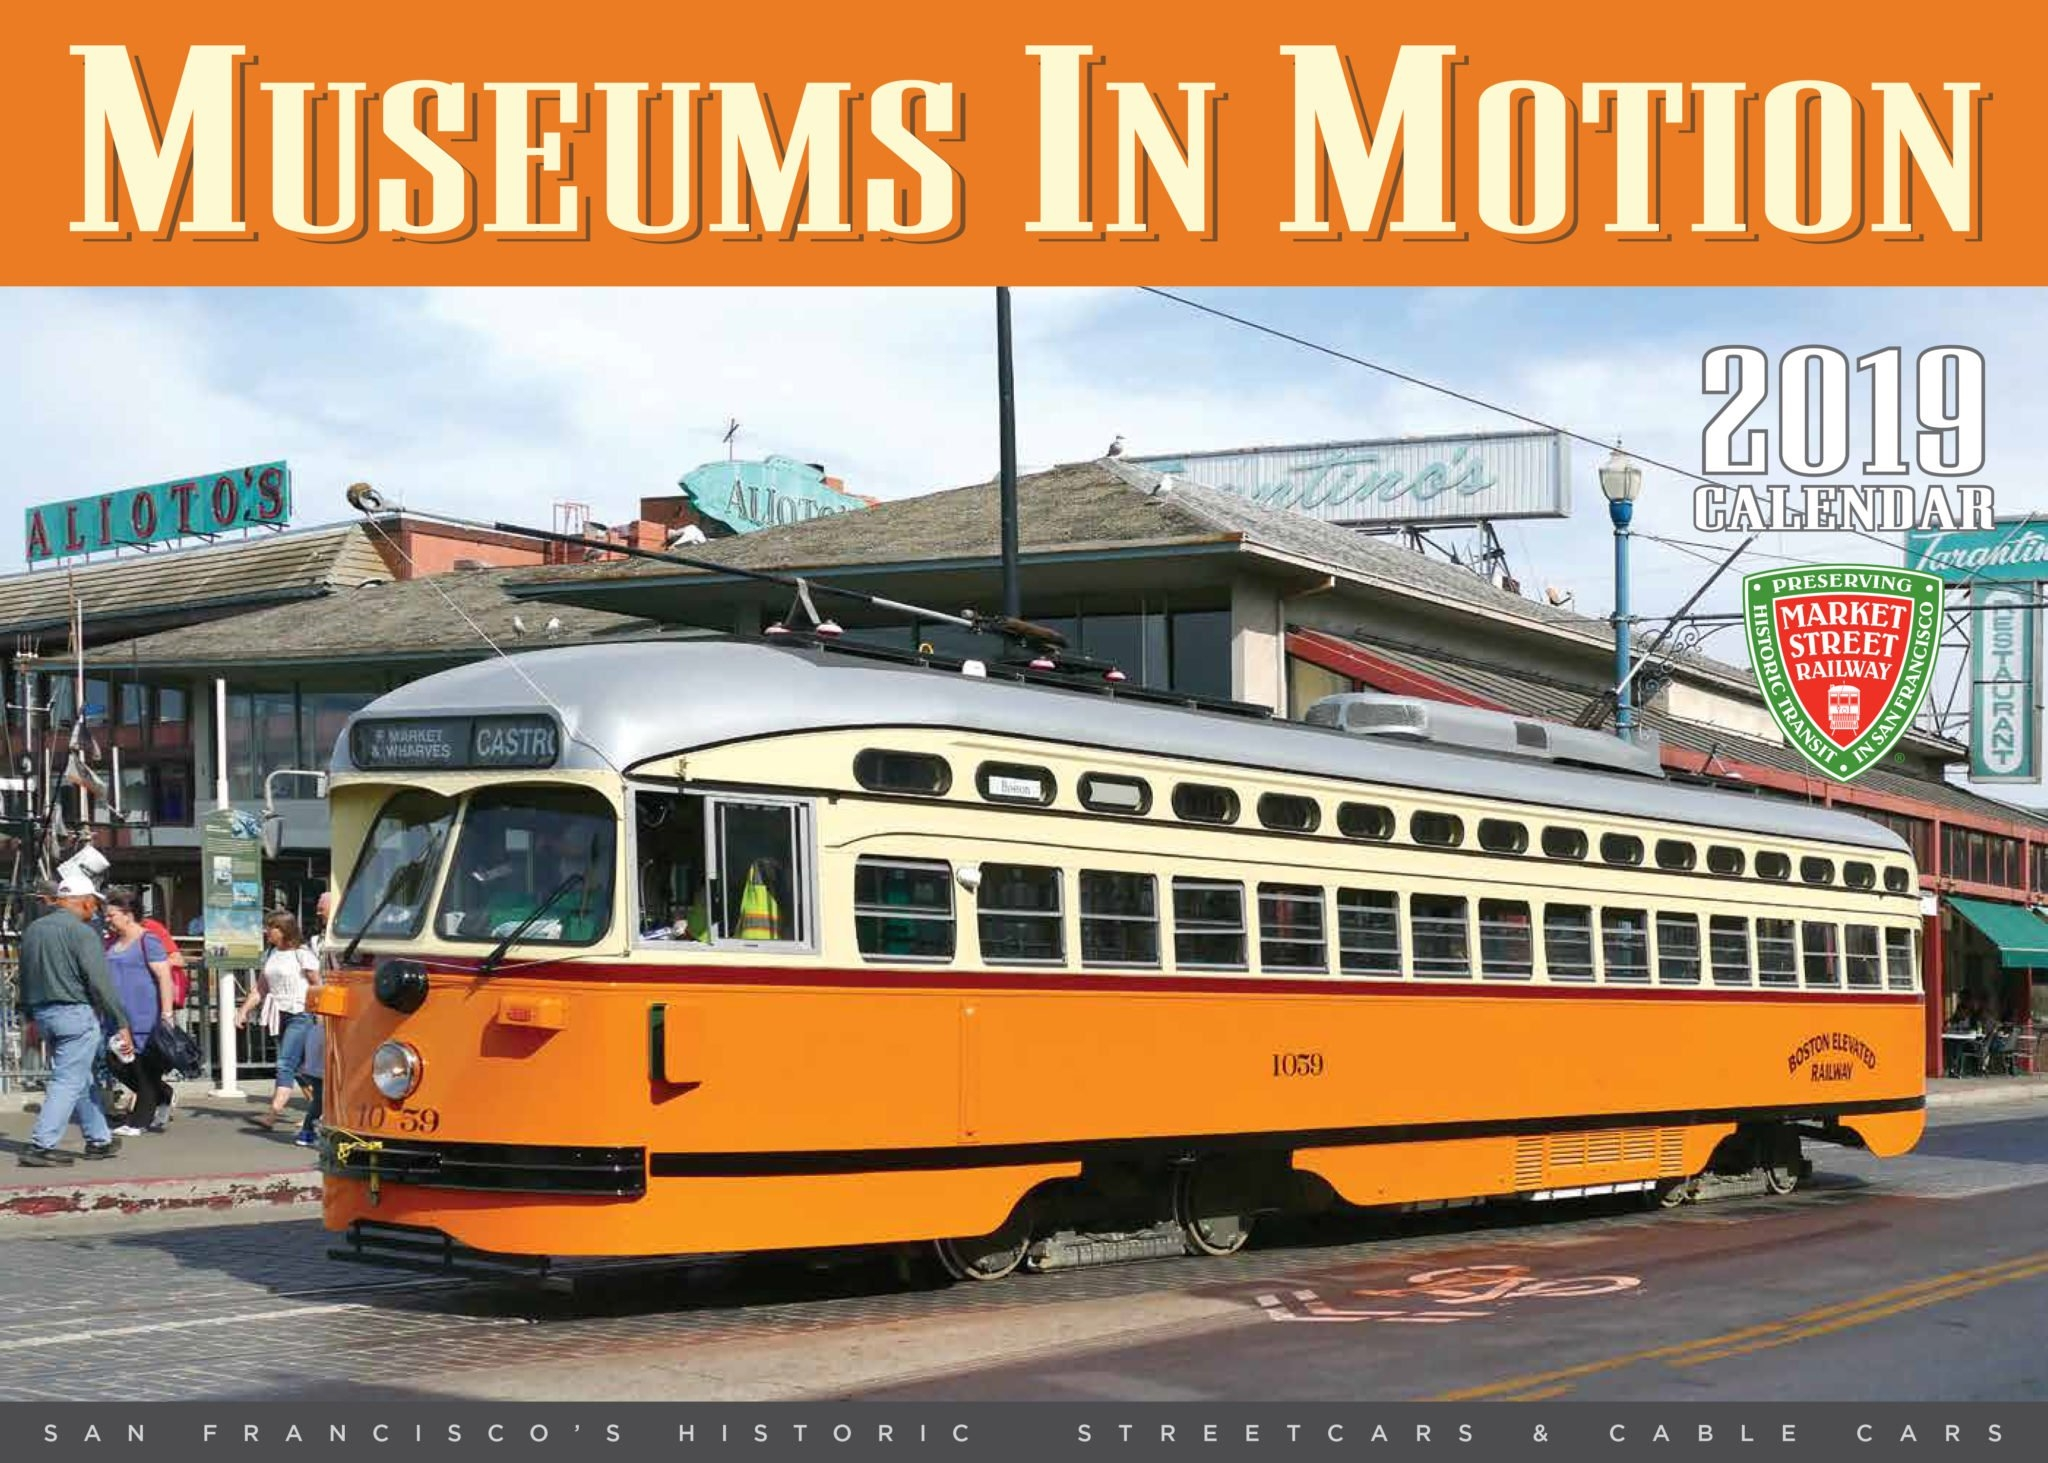 2019 Museums In Motion Calendar Calendar 2019 Bu